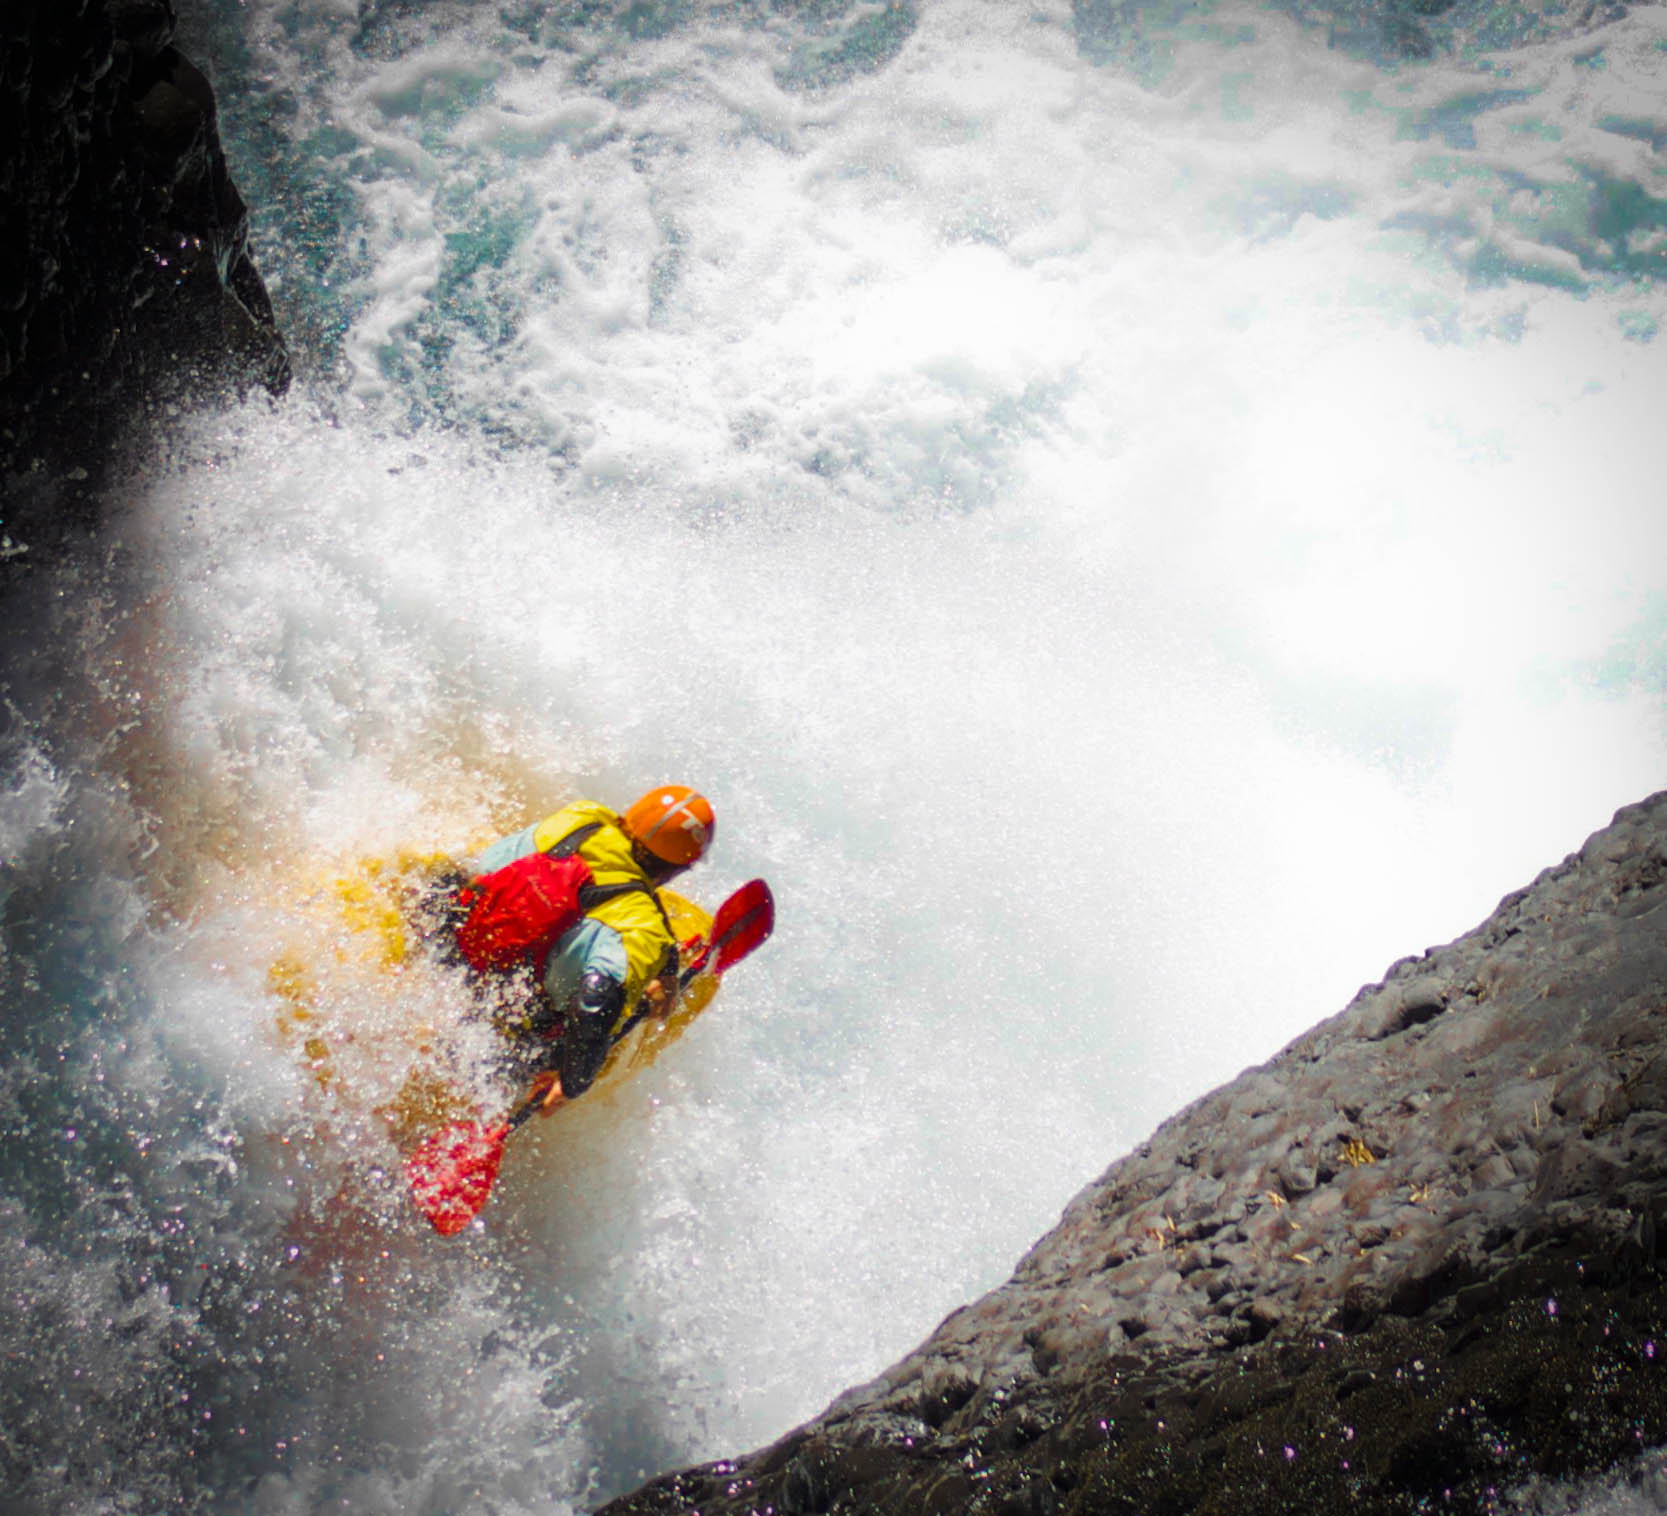 Kayak and Canoe Lorenzo Andrade-Astorga on Garganta del Diablo, Chile